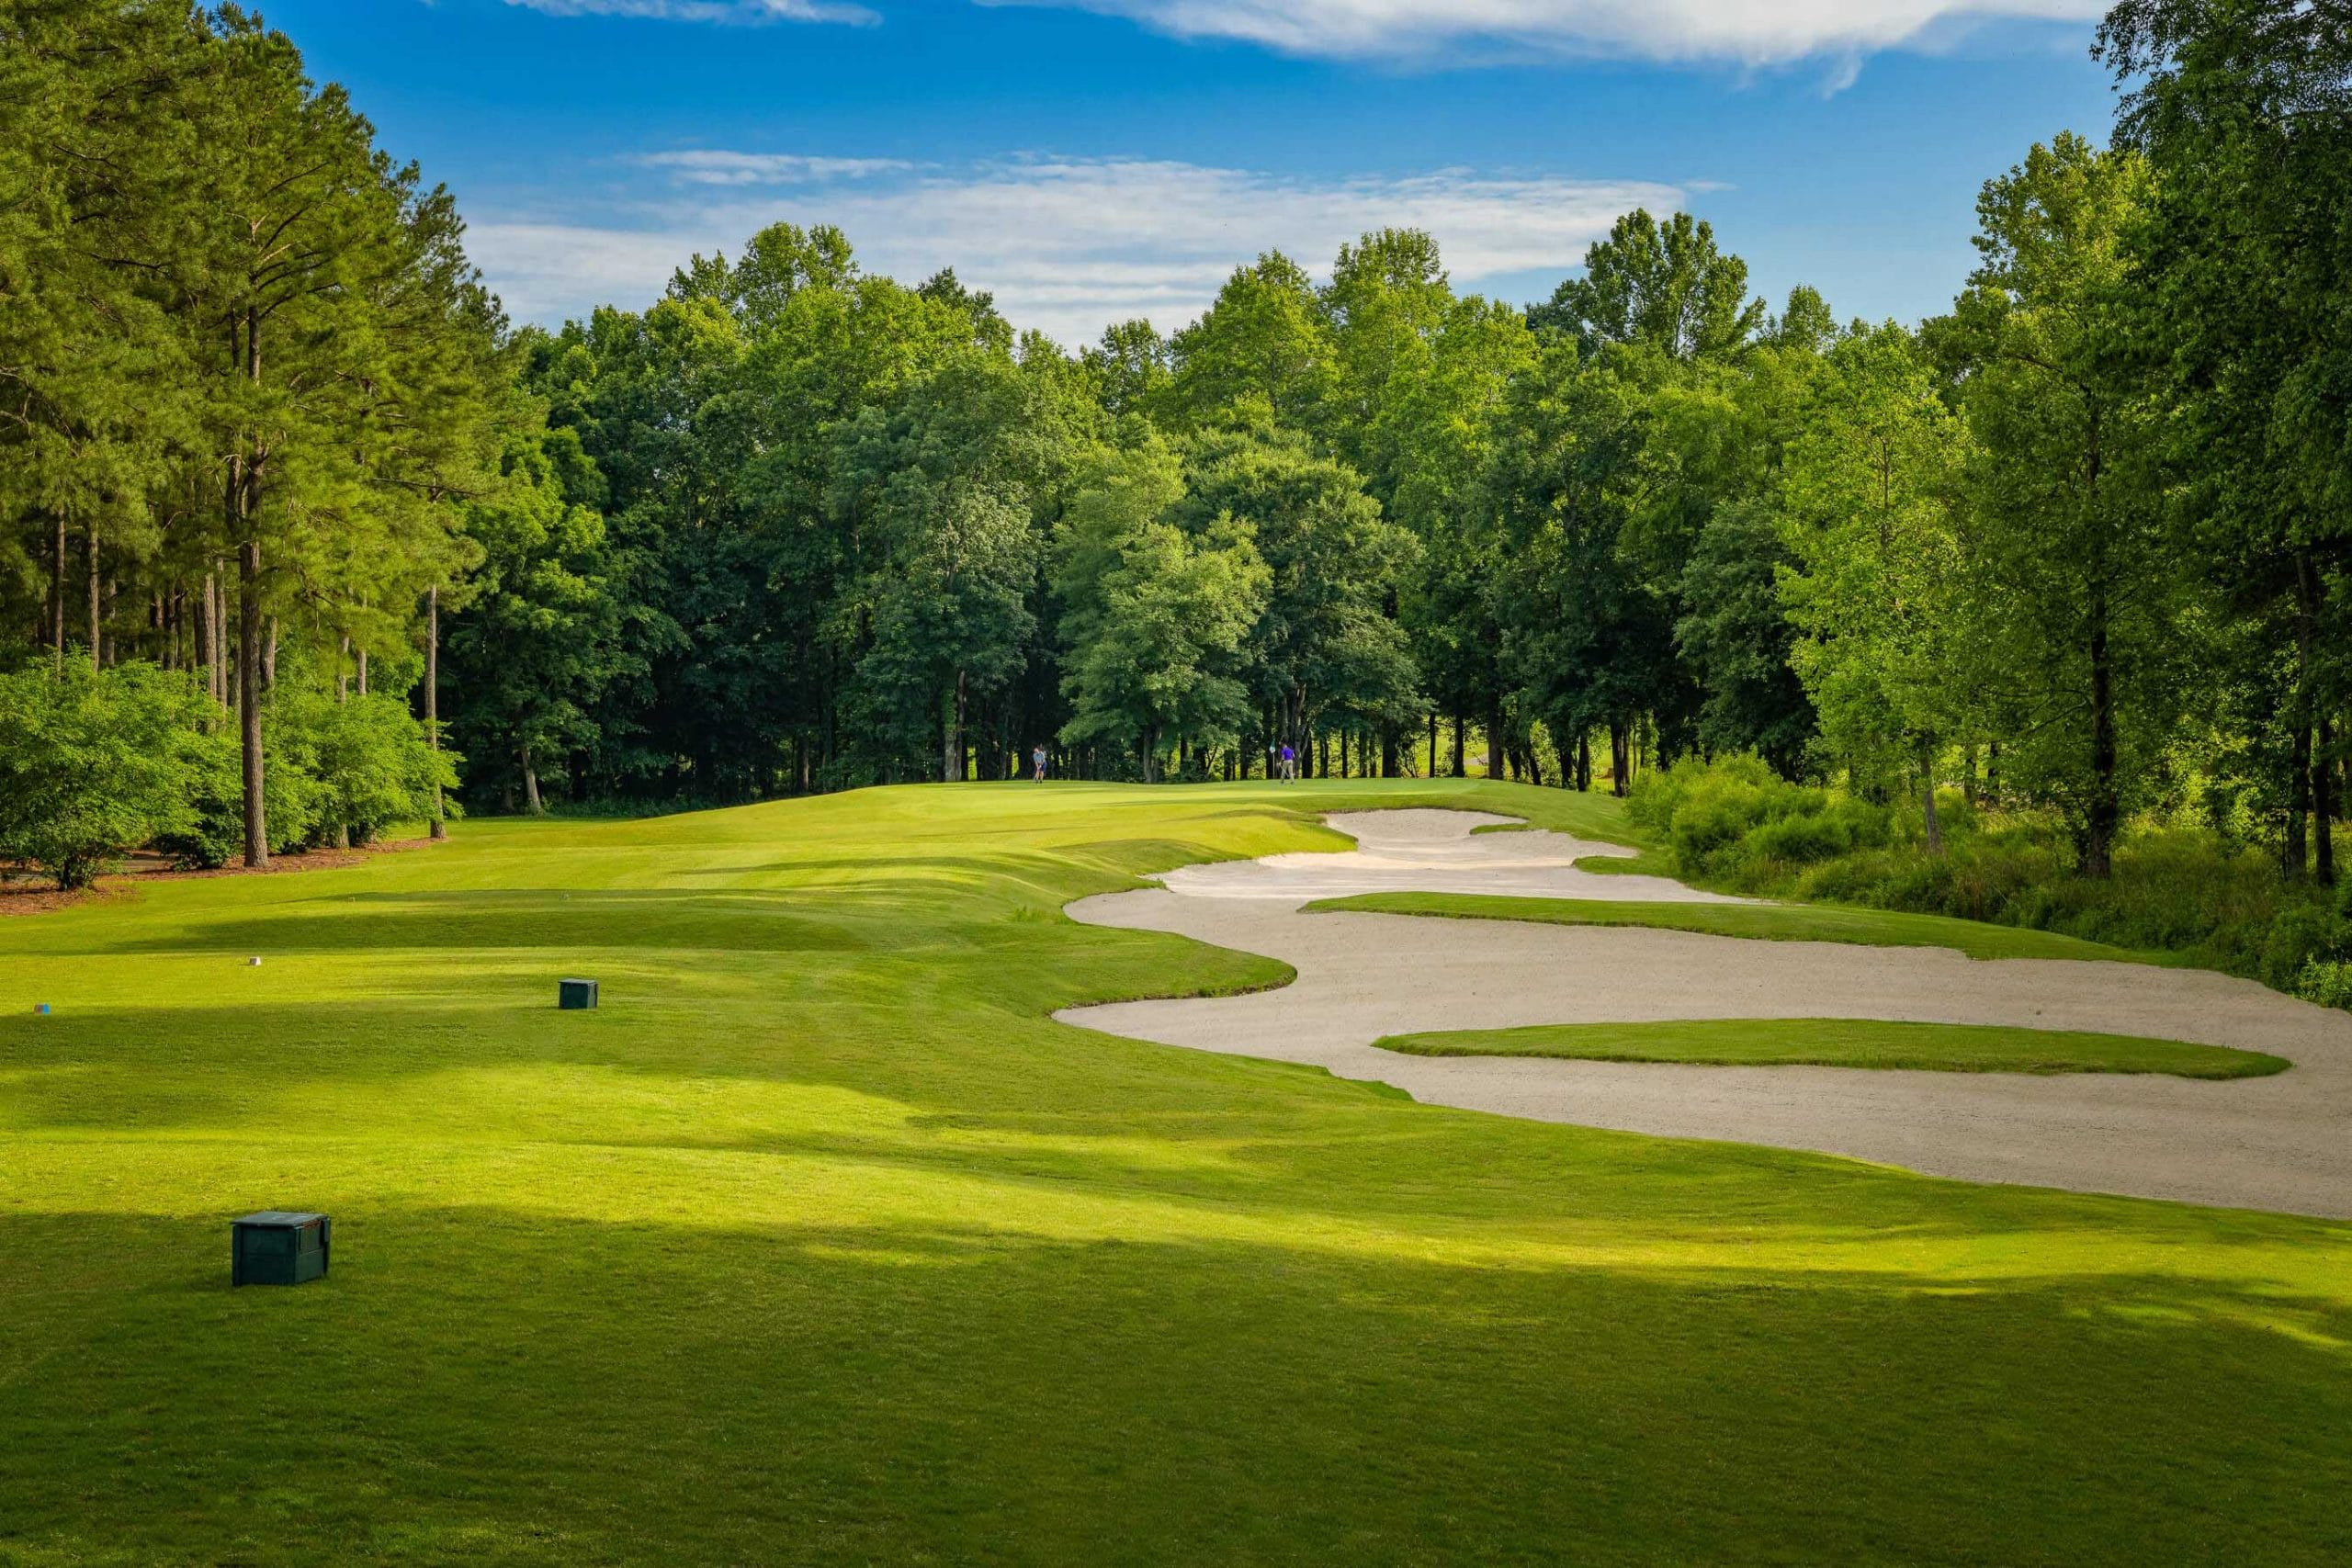 The Frog golf course at The Georgian in Paulding County